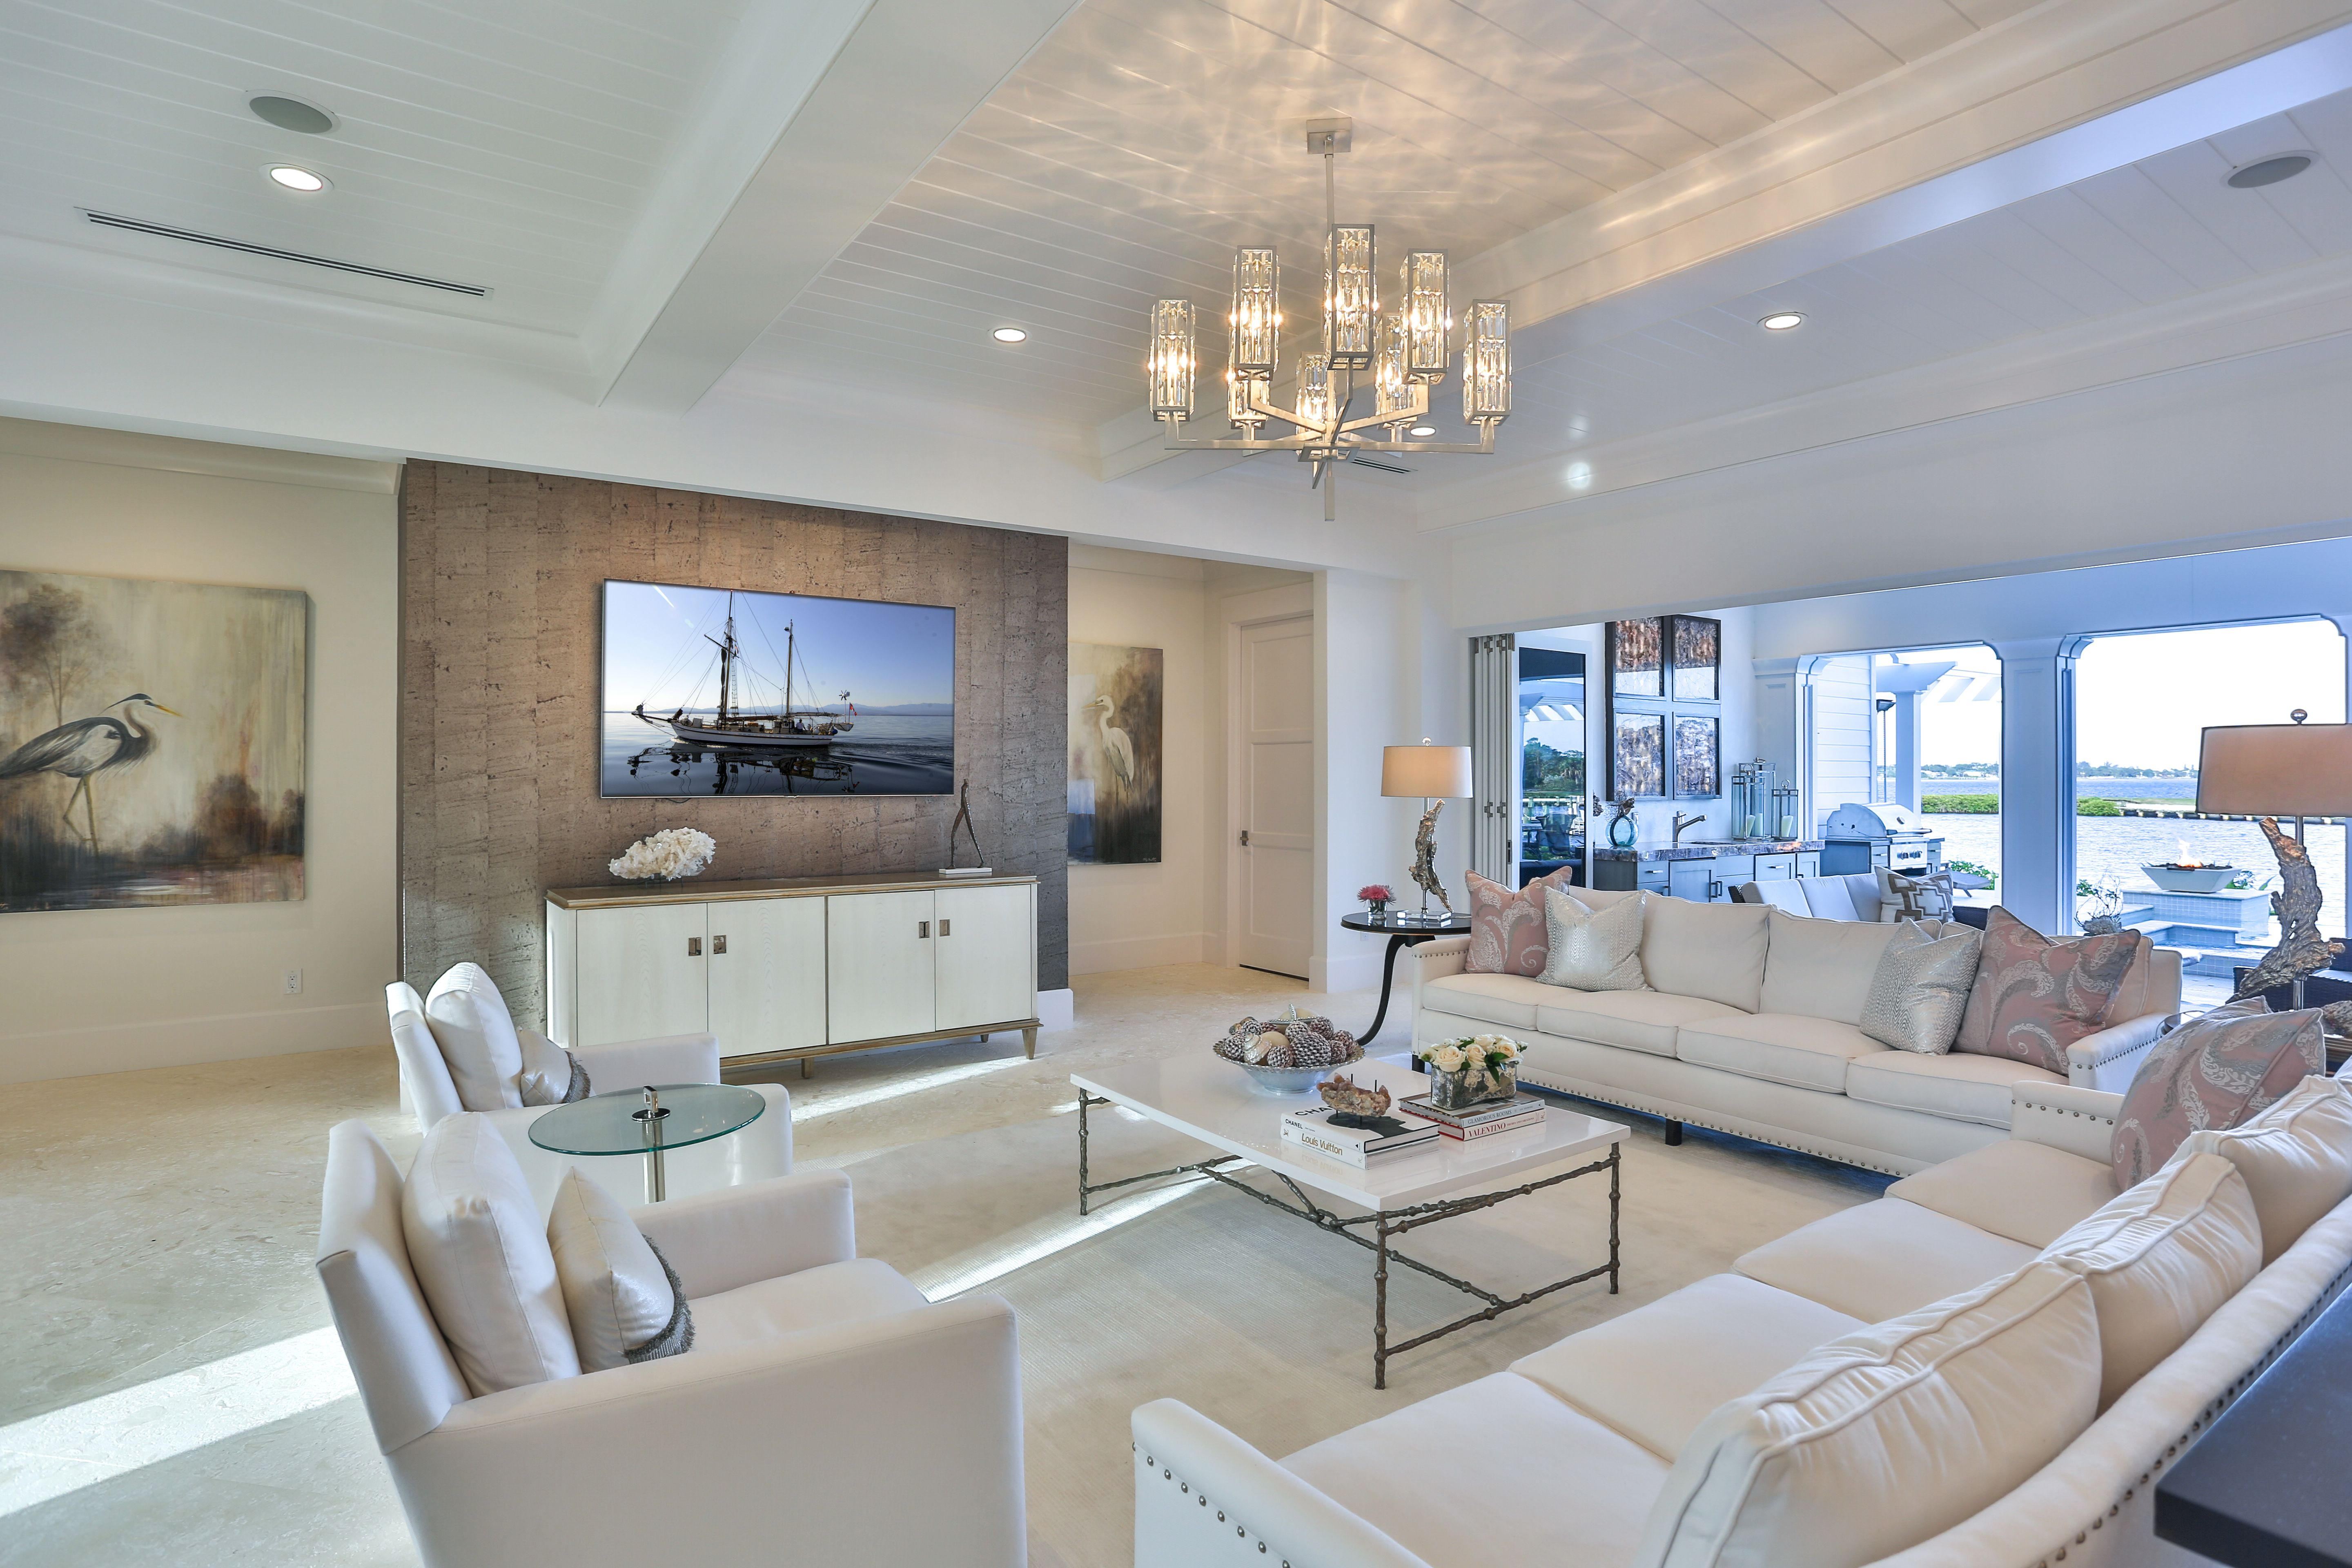 this regal, award winning interior design space features our